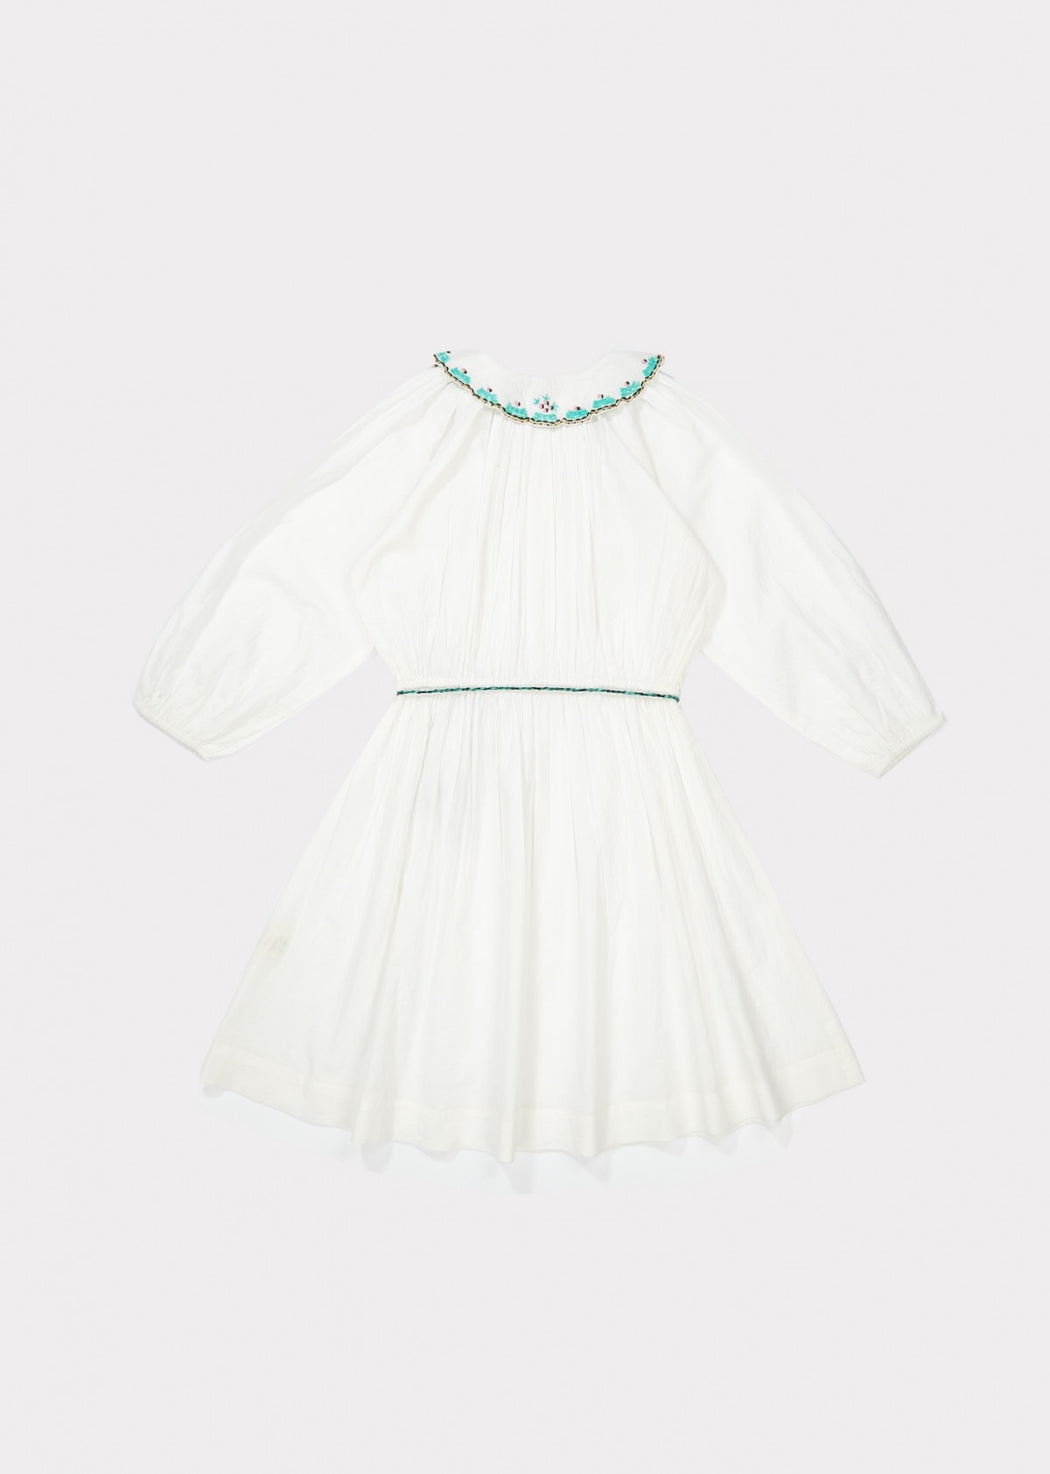 Porter Dress White was £119